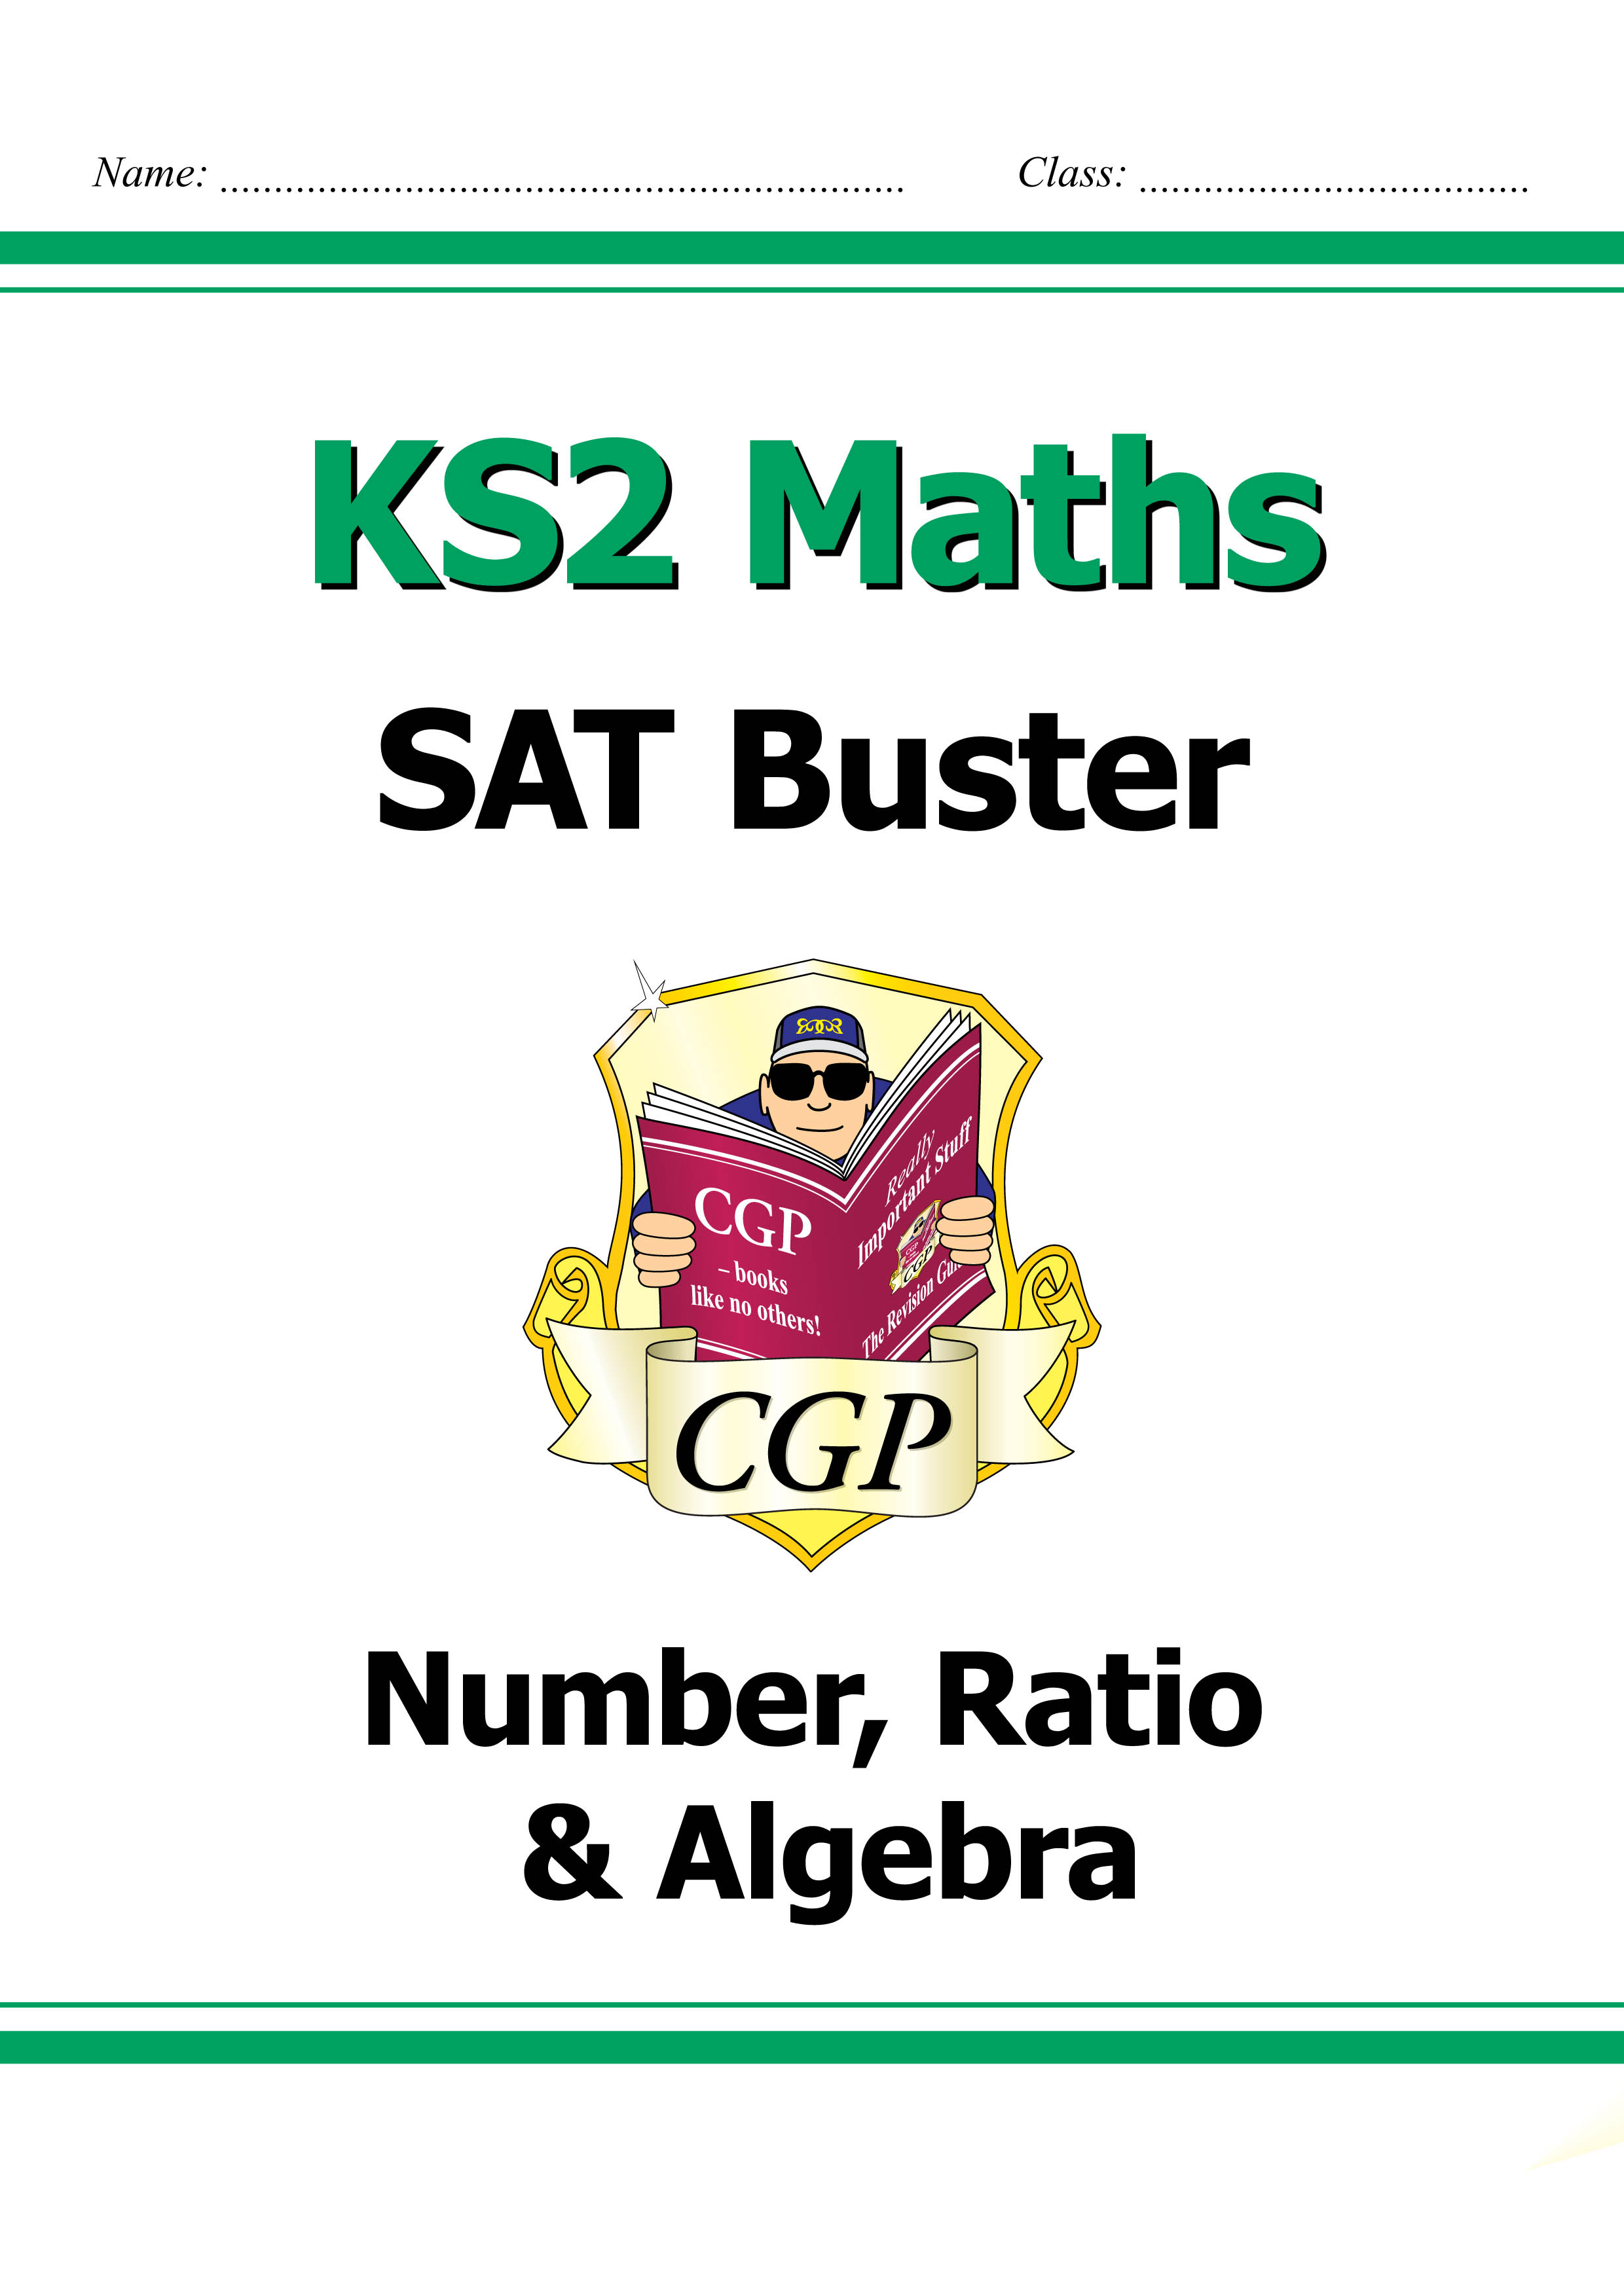 M6N23DK - KS2 Maths SAT Buster: Number, Ratio & Algebra (for tests in 2018 and beyond)